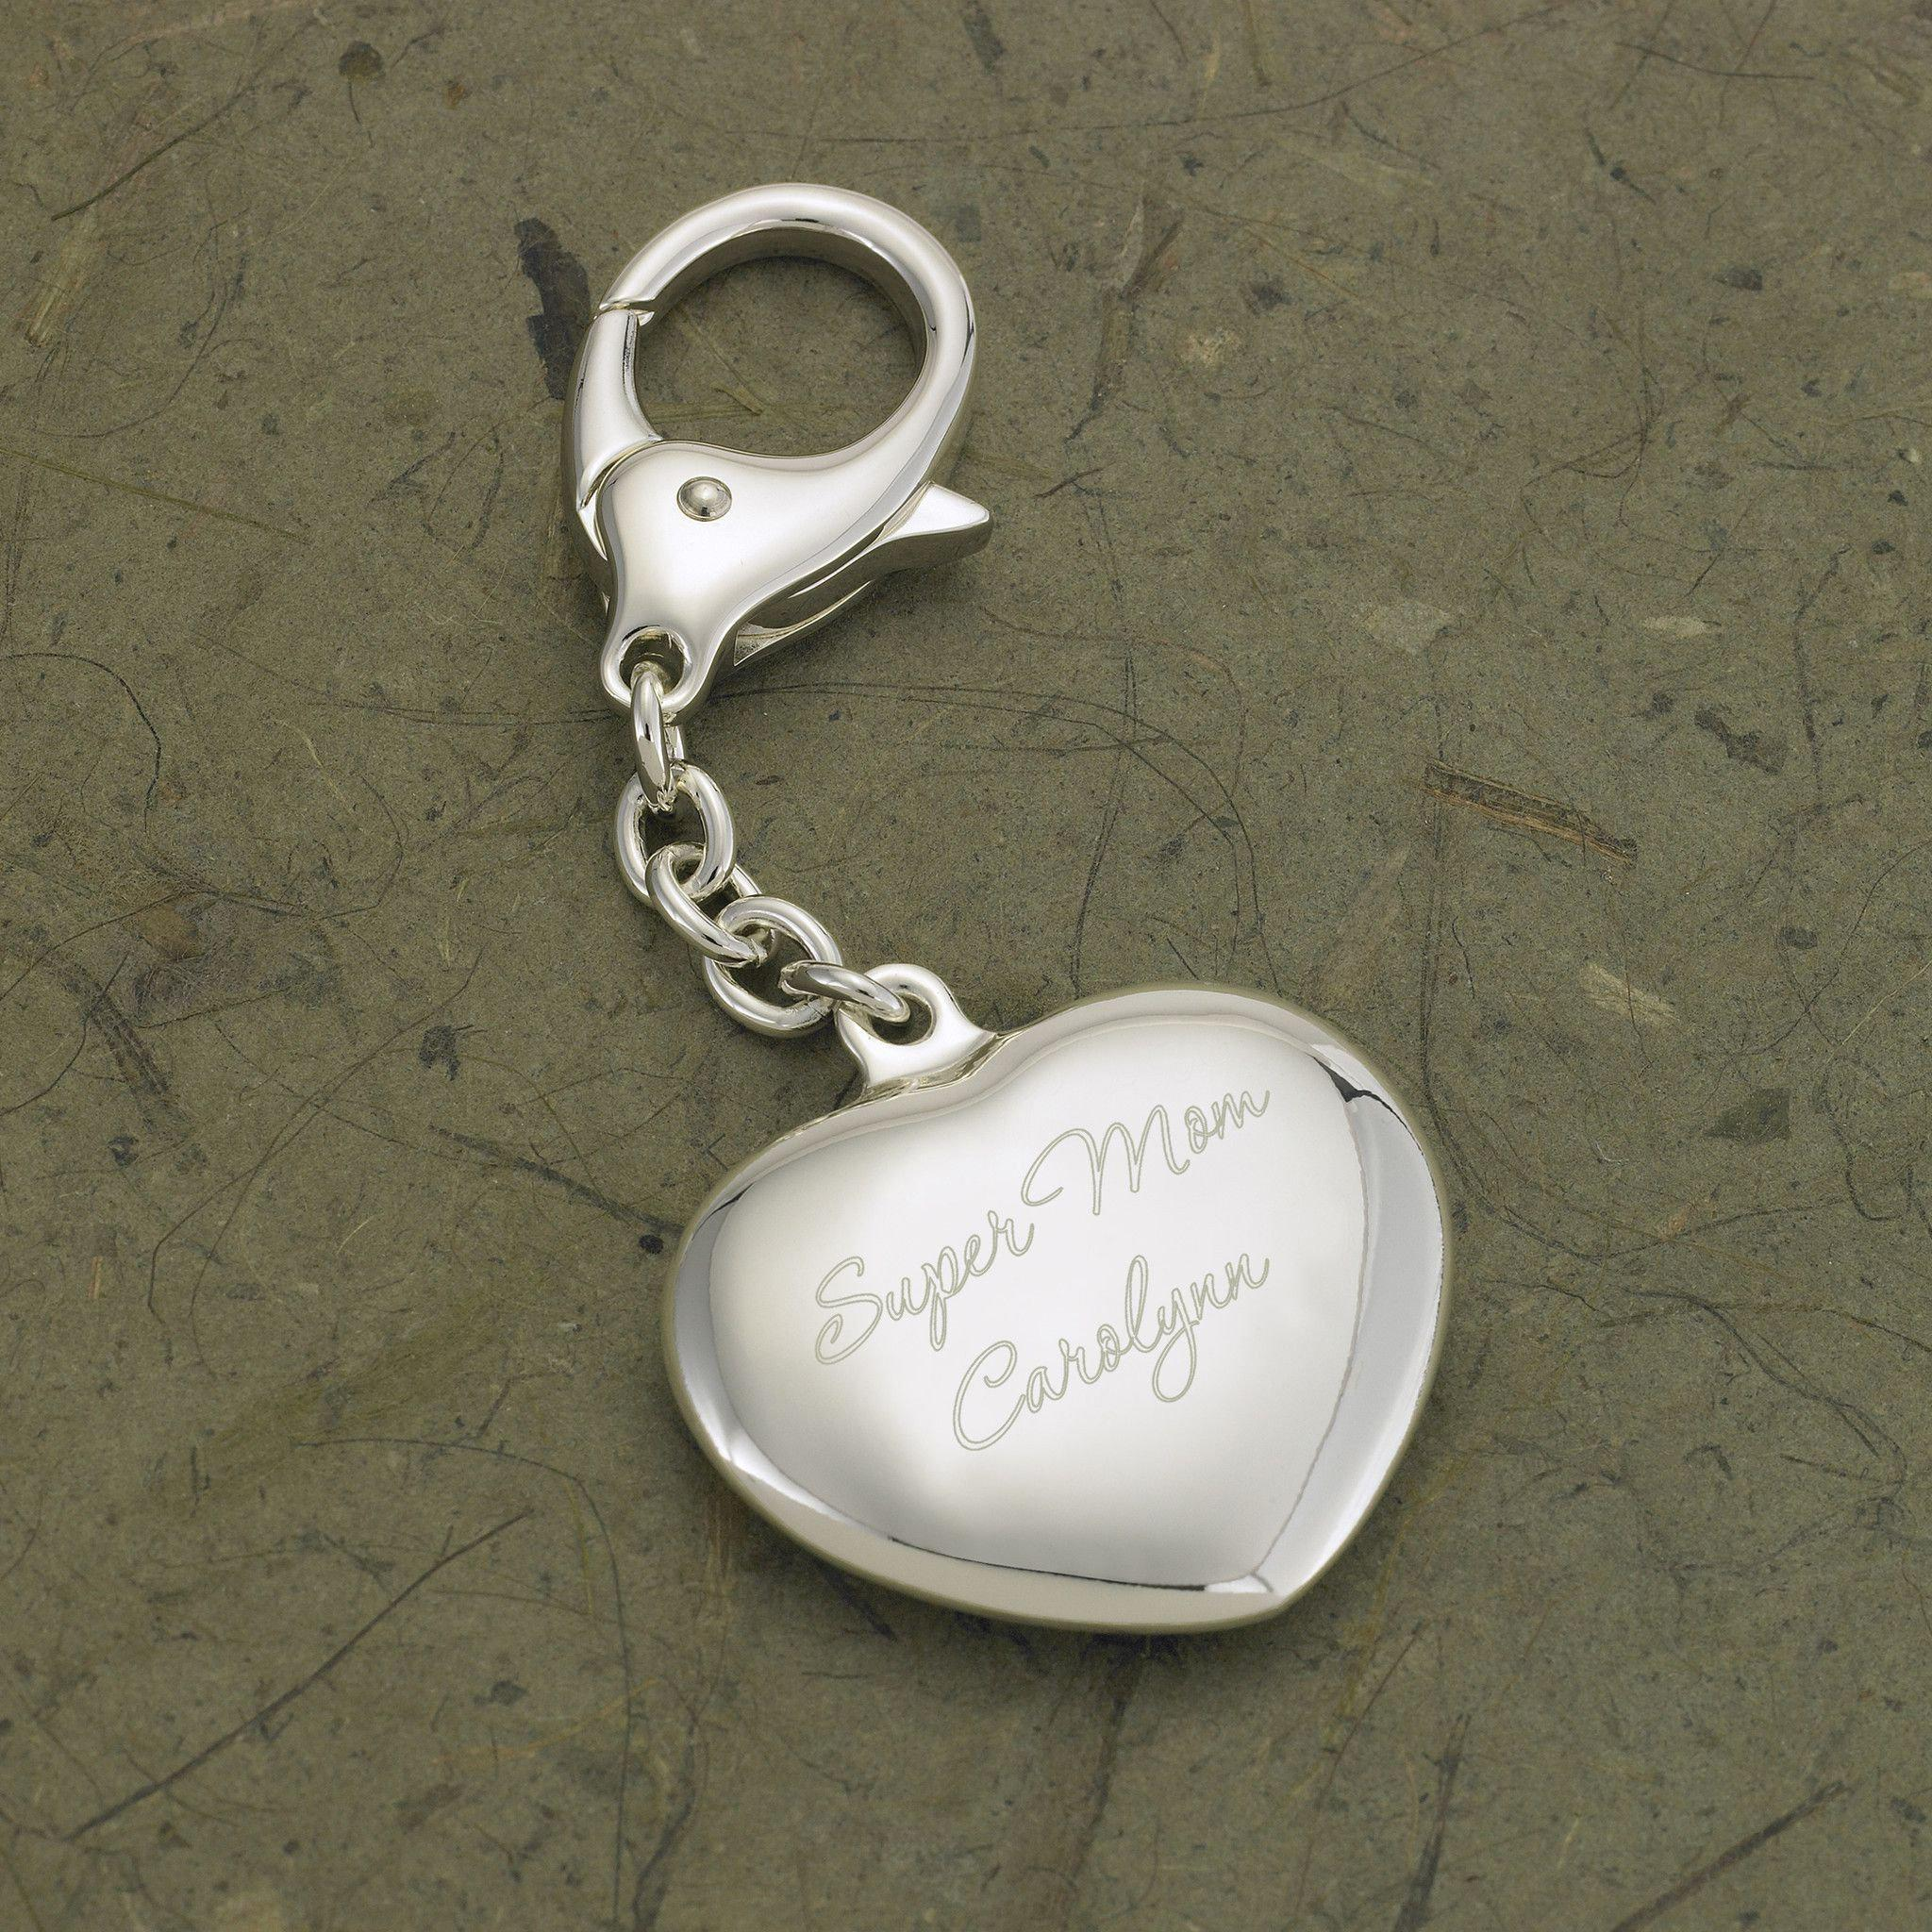 Personalized-Silver-Plated-Heart-Key-Chain